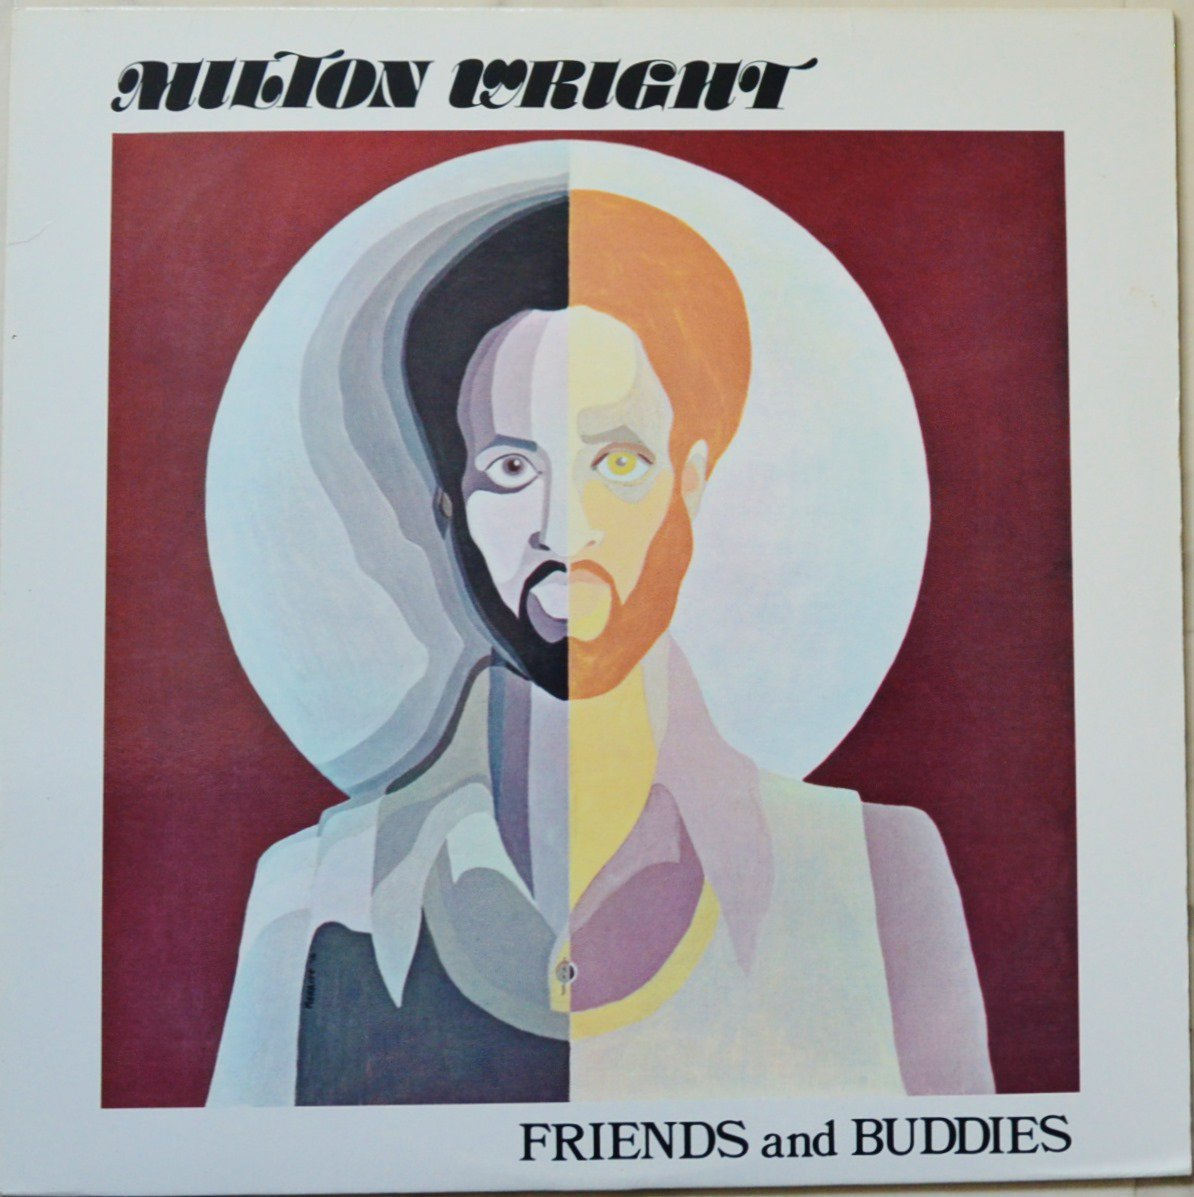 MILTON WRIGHT / FRIENDS AND BUDDIES (LP)